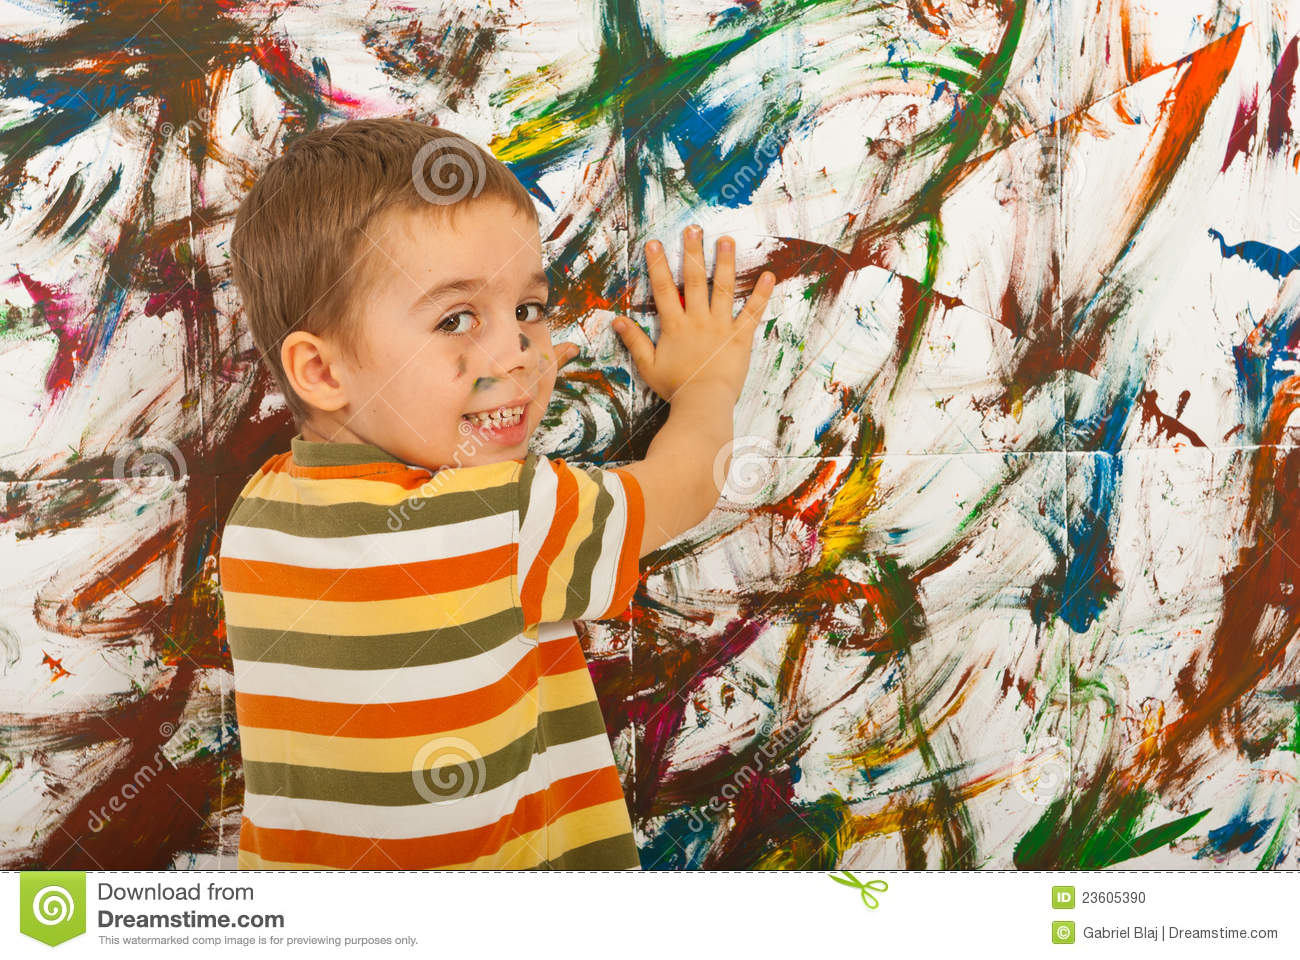 Person painting wall - Happy Kid Painting With Palms A Wall Stock Photo Image 23605390